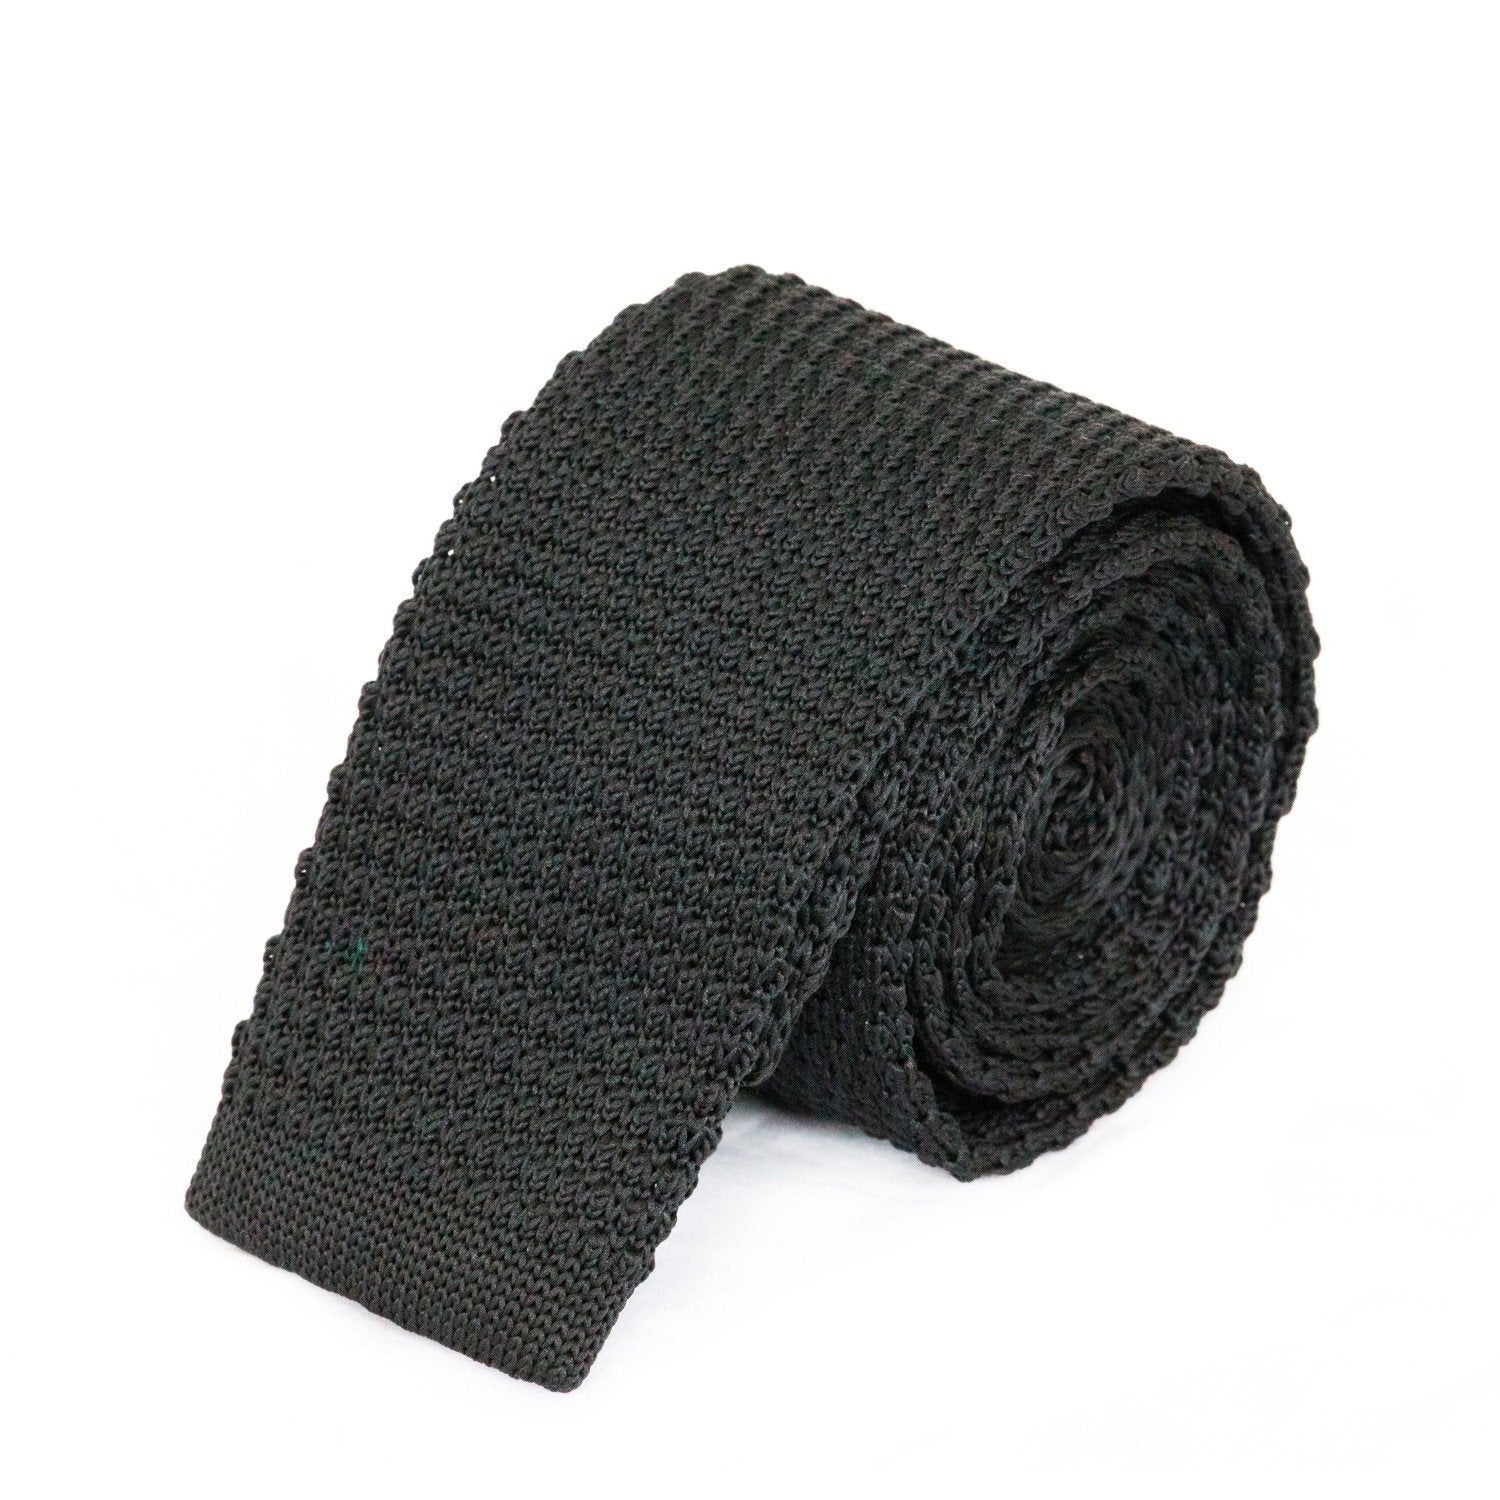 Black Knit Tie Ties Cuffed.com.au